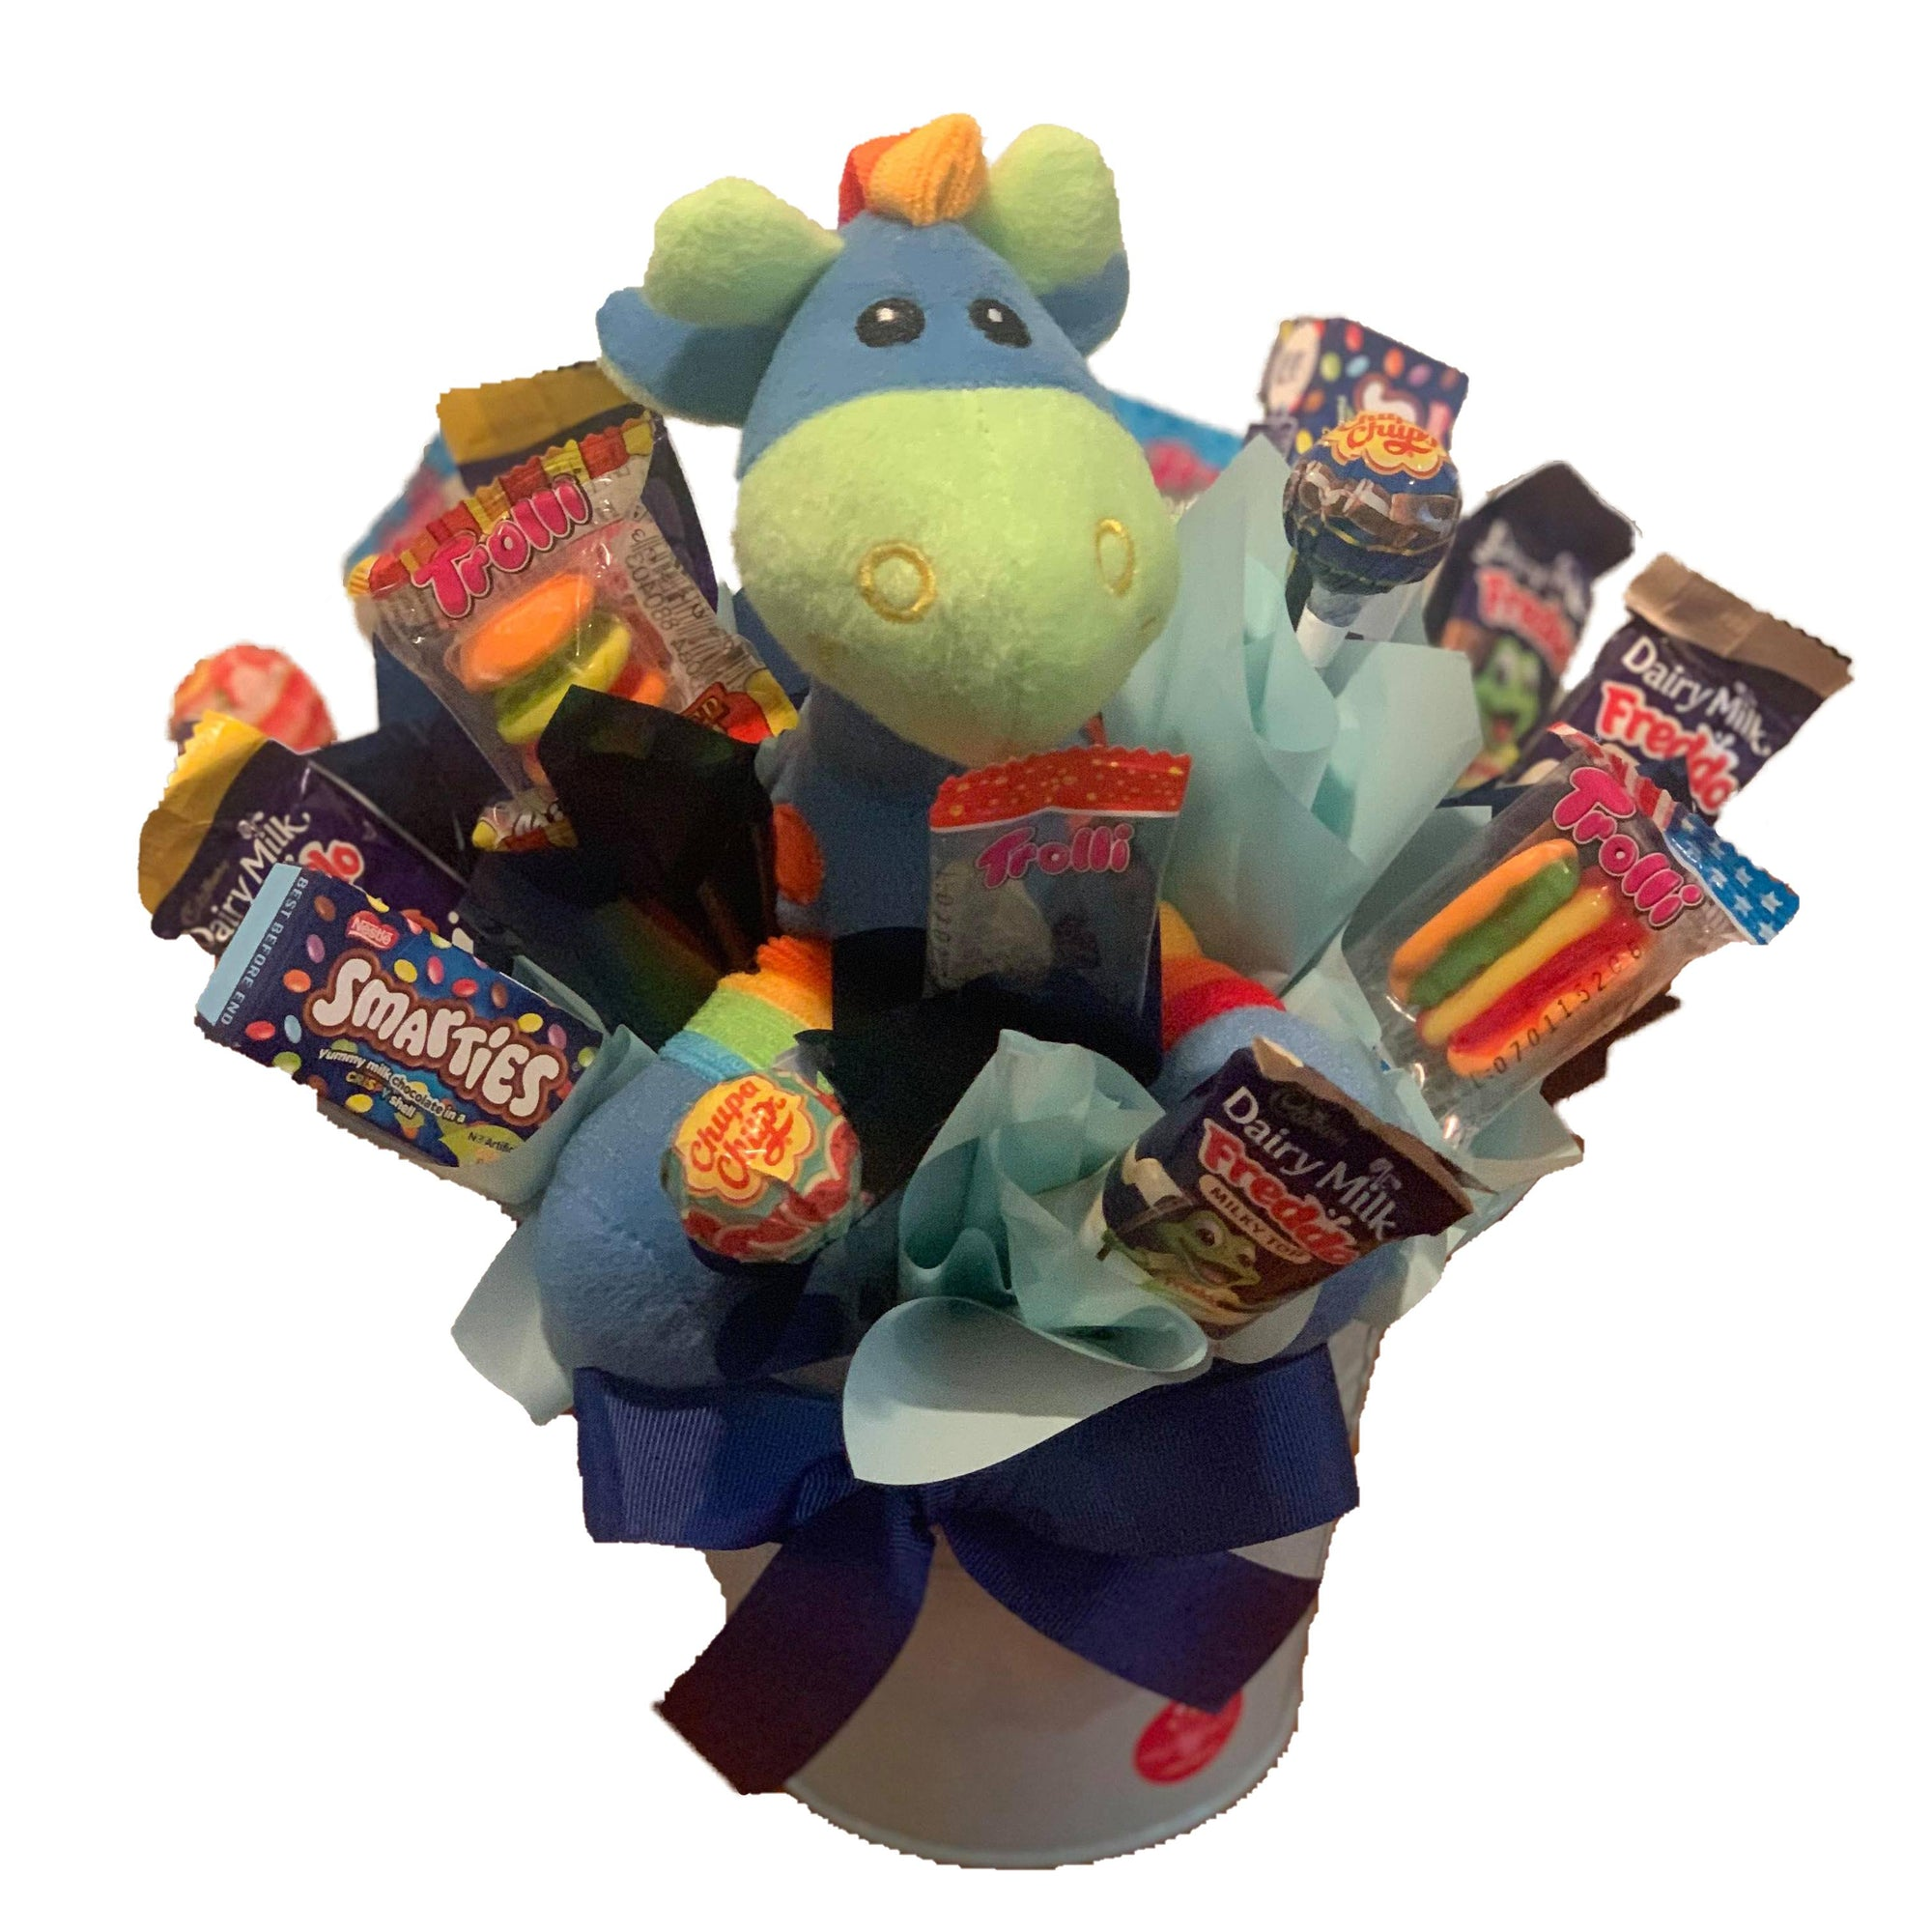 Blue Giraffe in a metal tin surrounded by chocolate and lollies